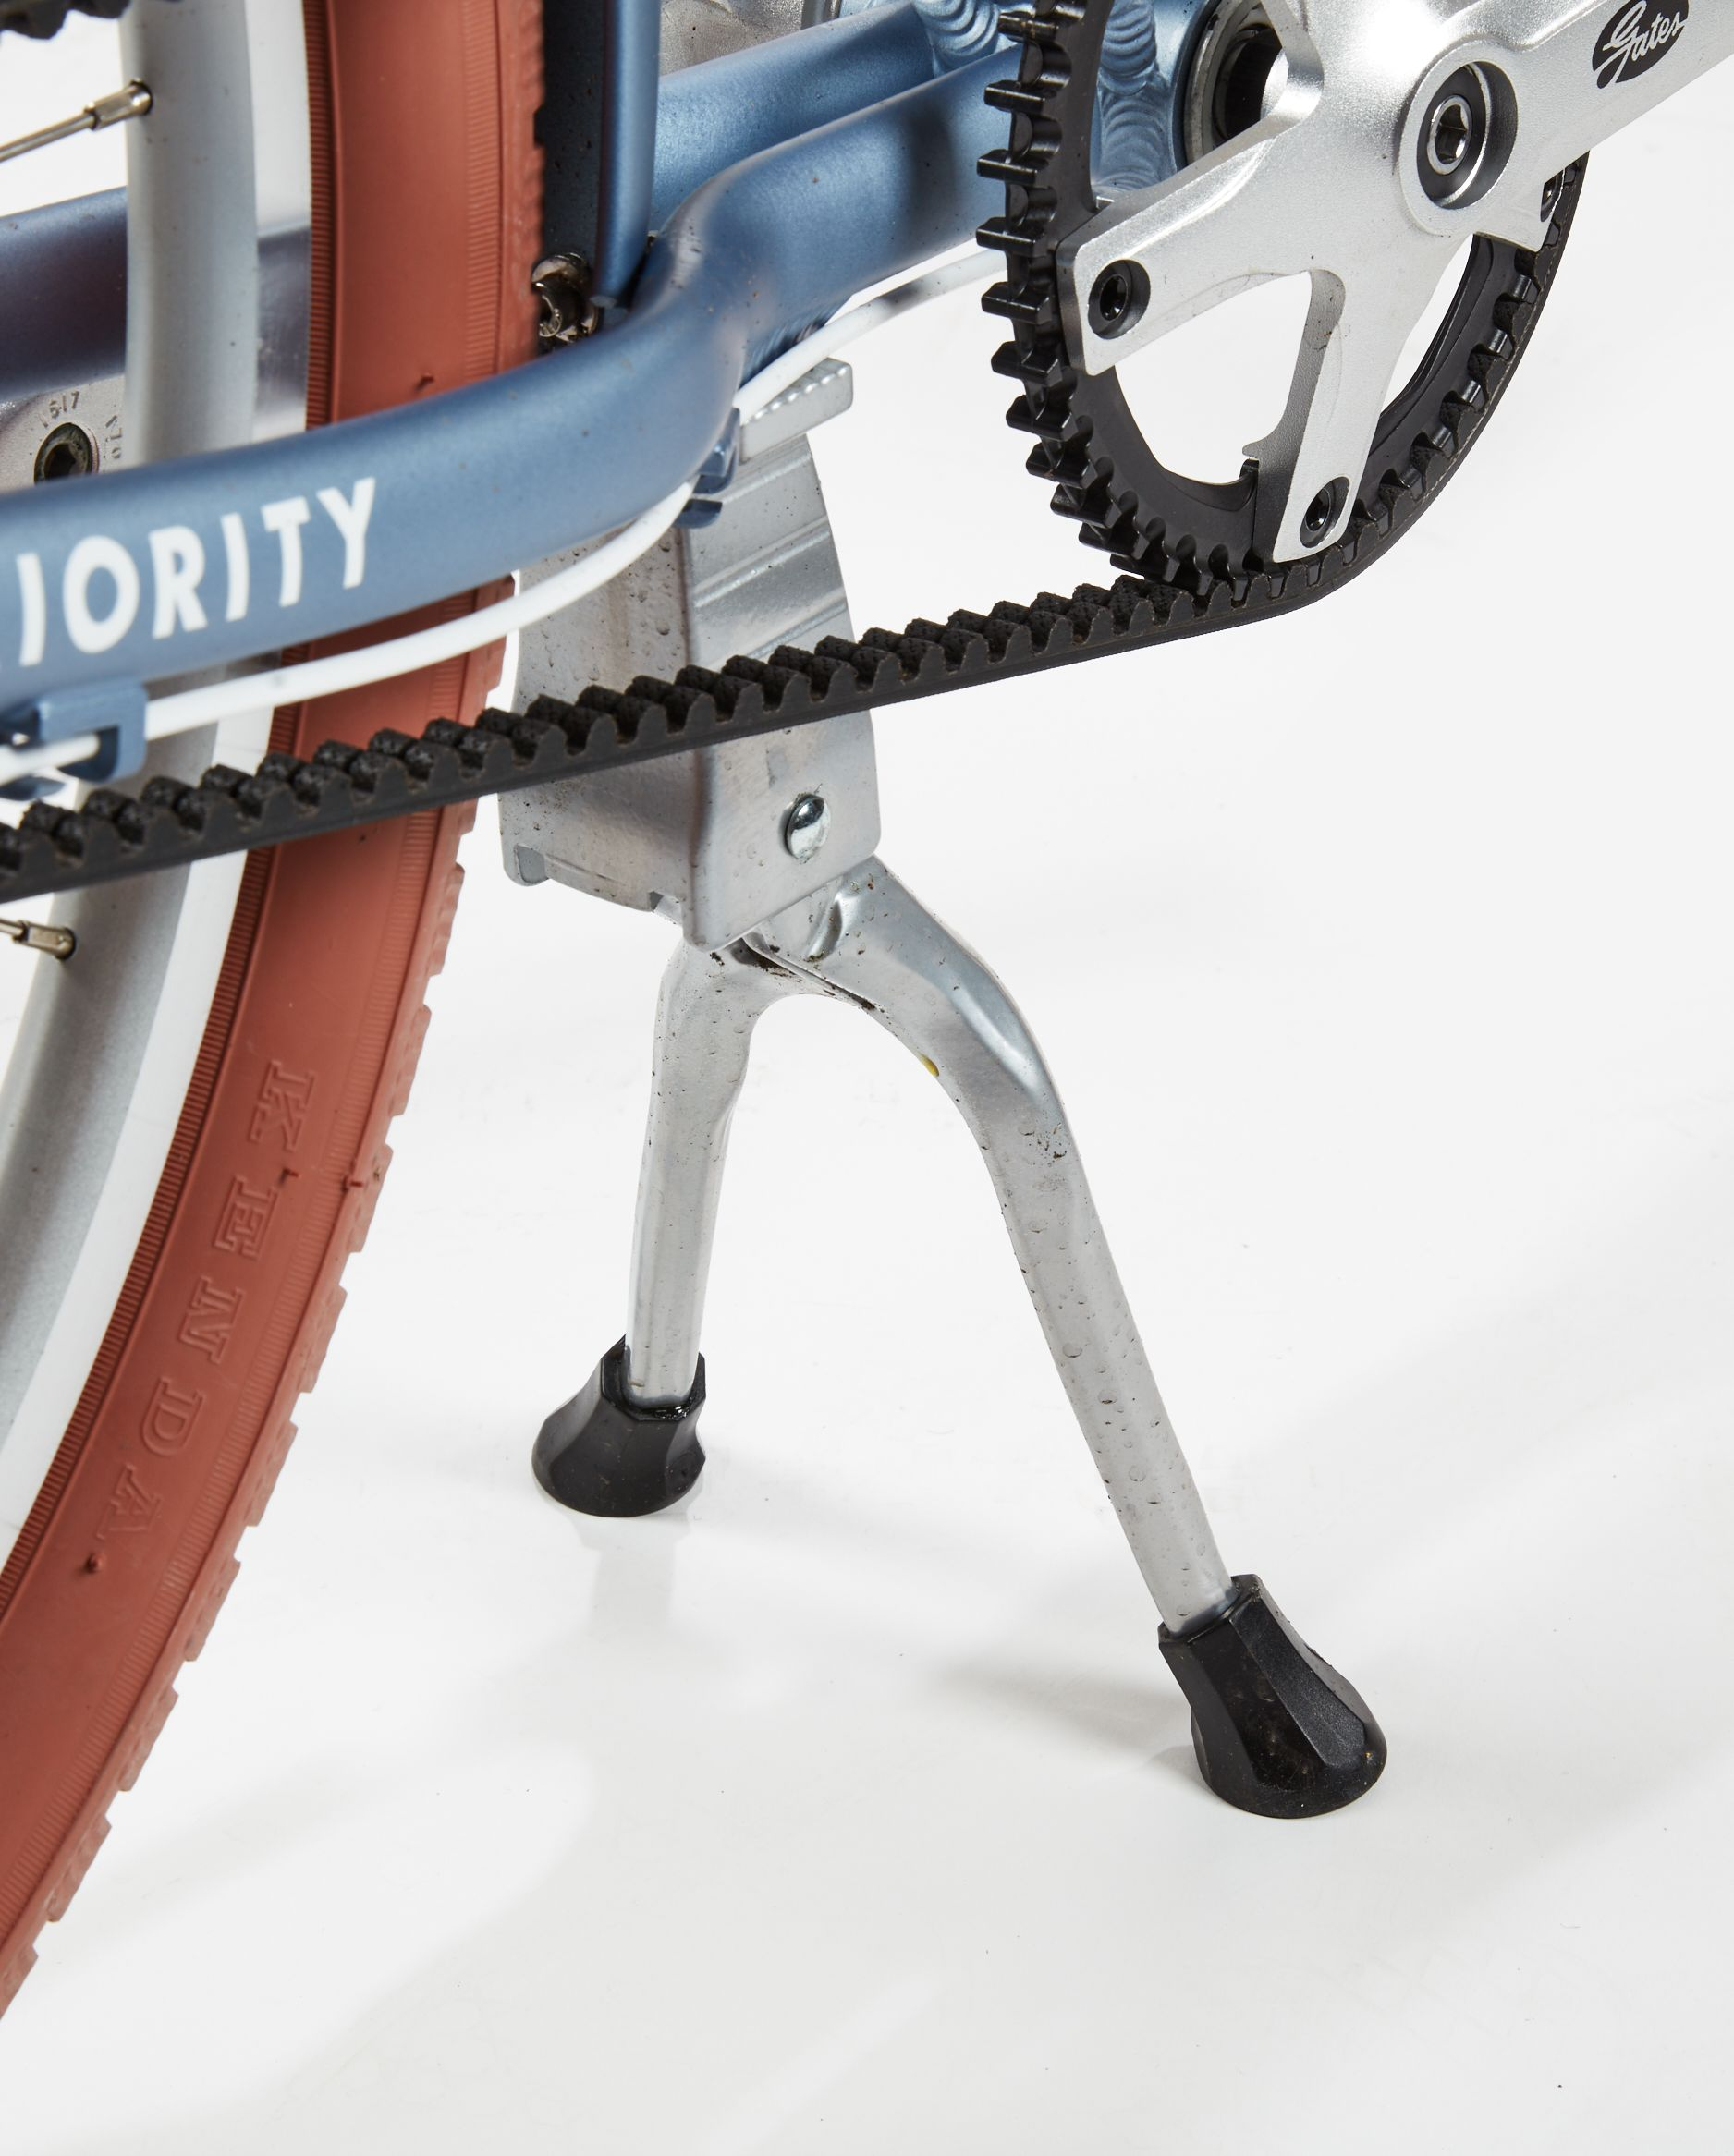 Priority Bicycles Coast kickstand